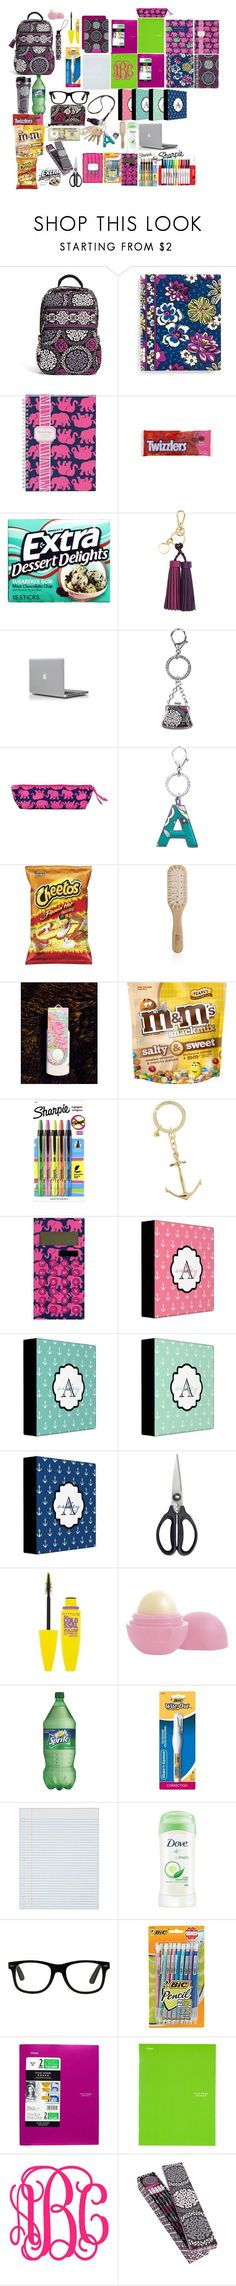 """back to school preppy school supplies for teens"" by turnerjazmyne on Polyvore featuring Vera Bradley, Lilly Pulitzer, H&M, Philip Kingsley, Regatta, Sharpie, J.Crew, OXO, Eos and Wite"